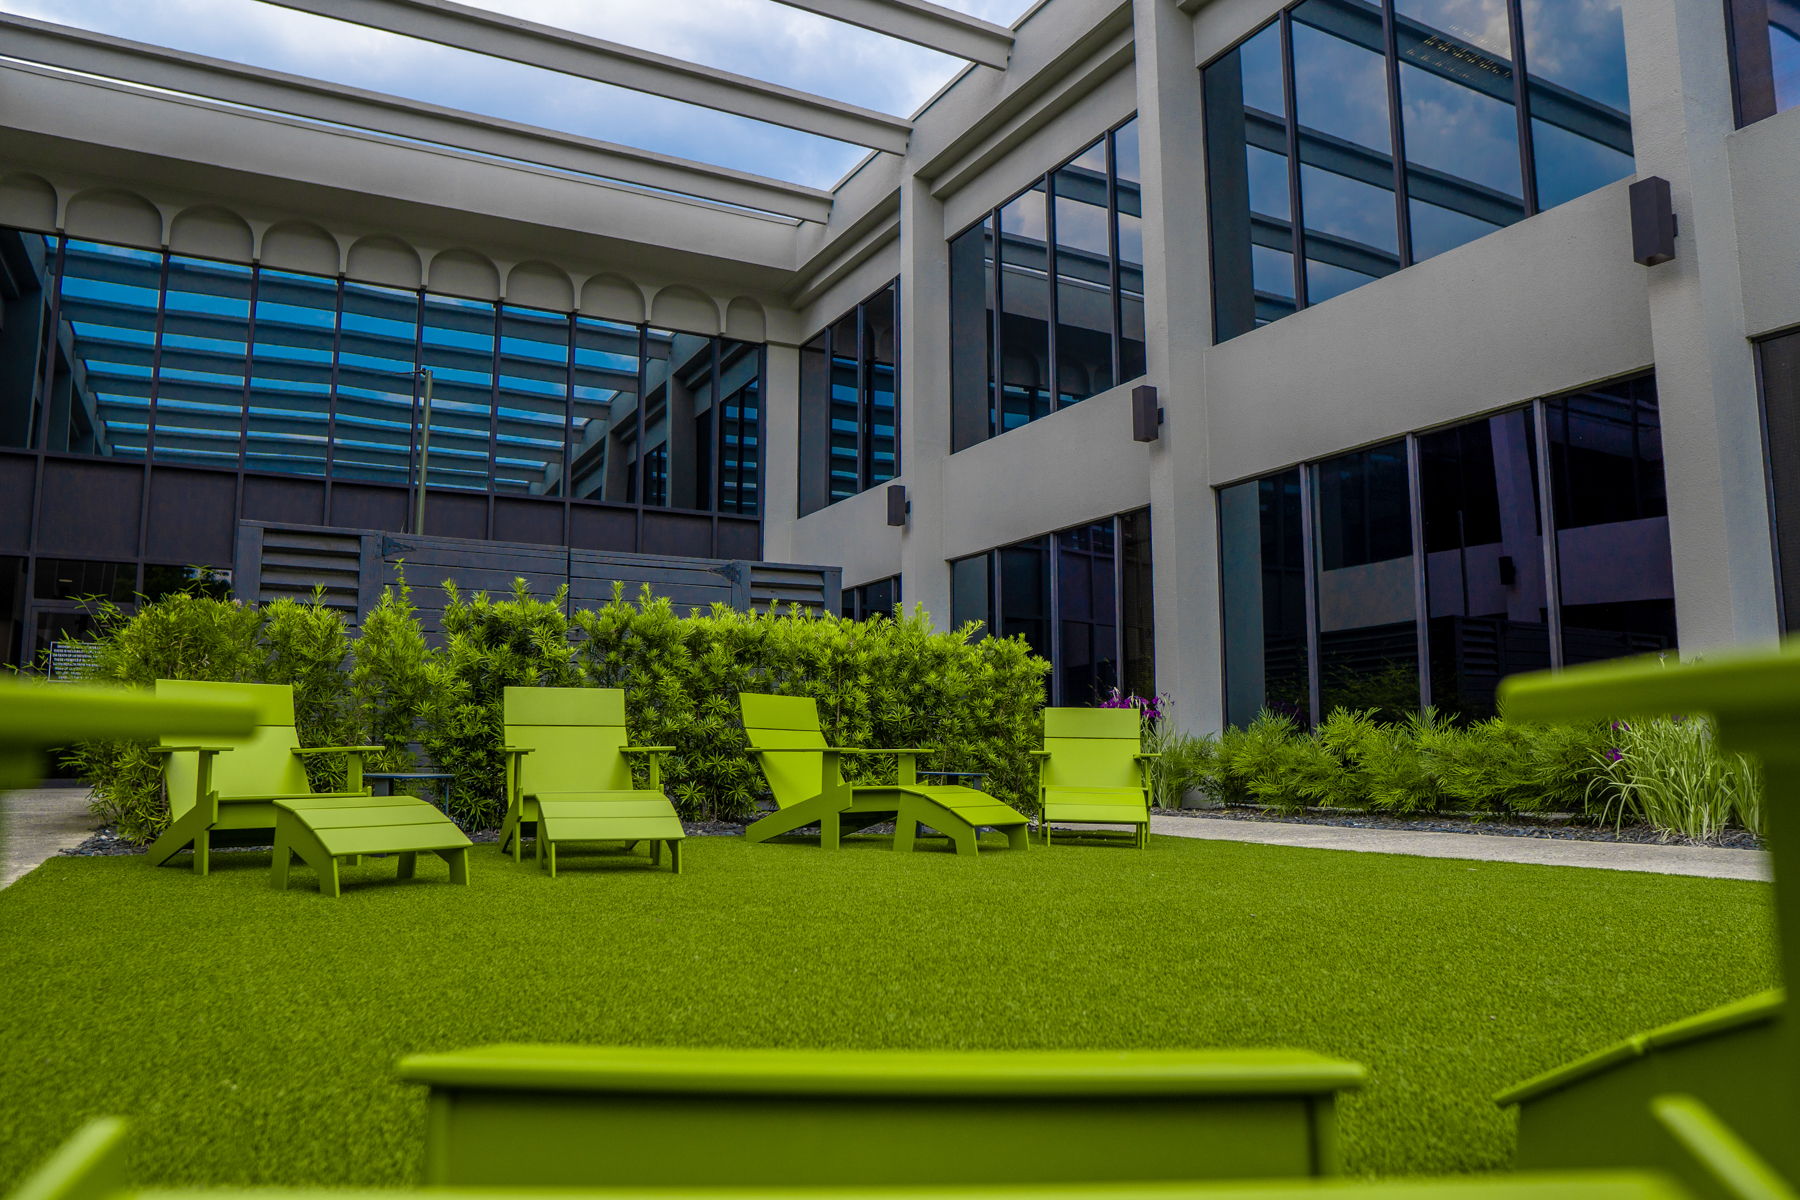 Commercial Landscaping District of Chamblee lawn courtyard artificial turf